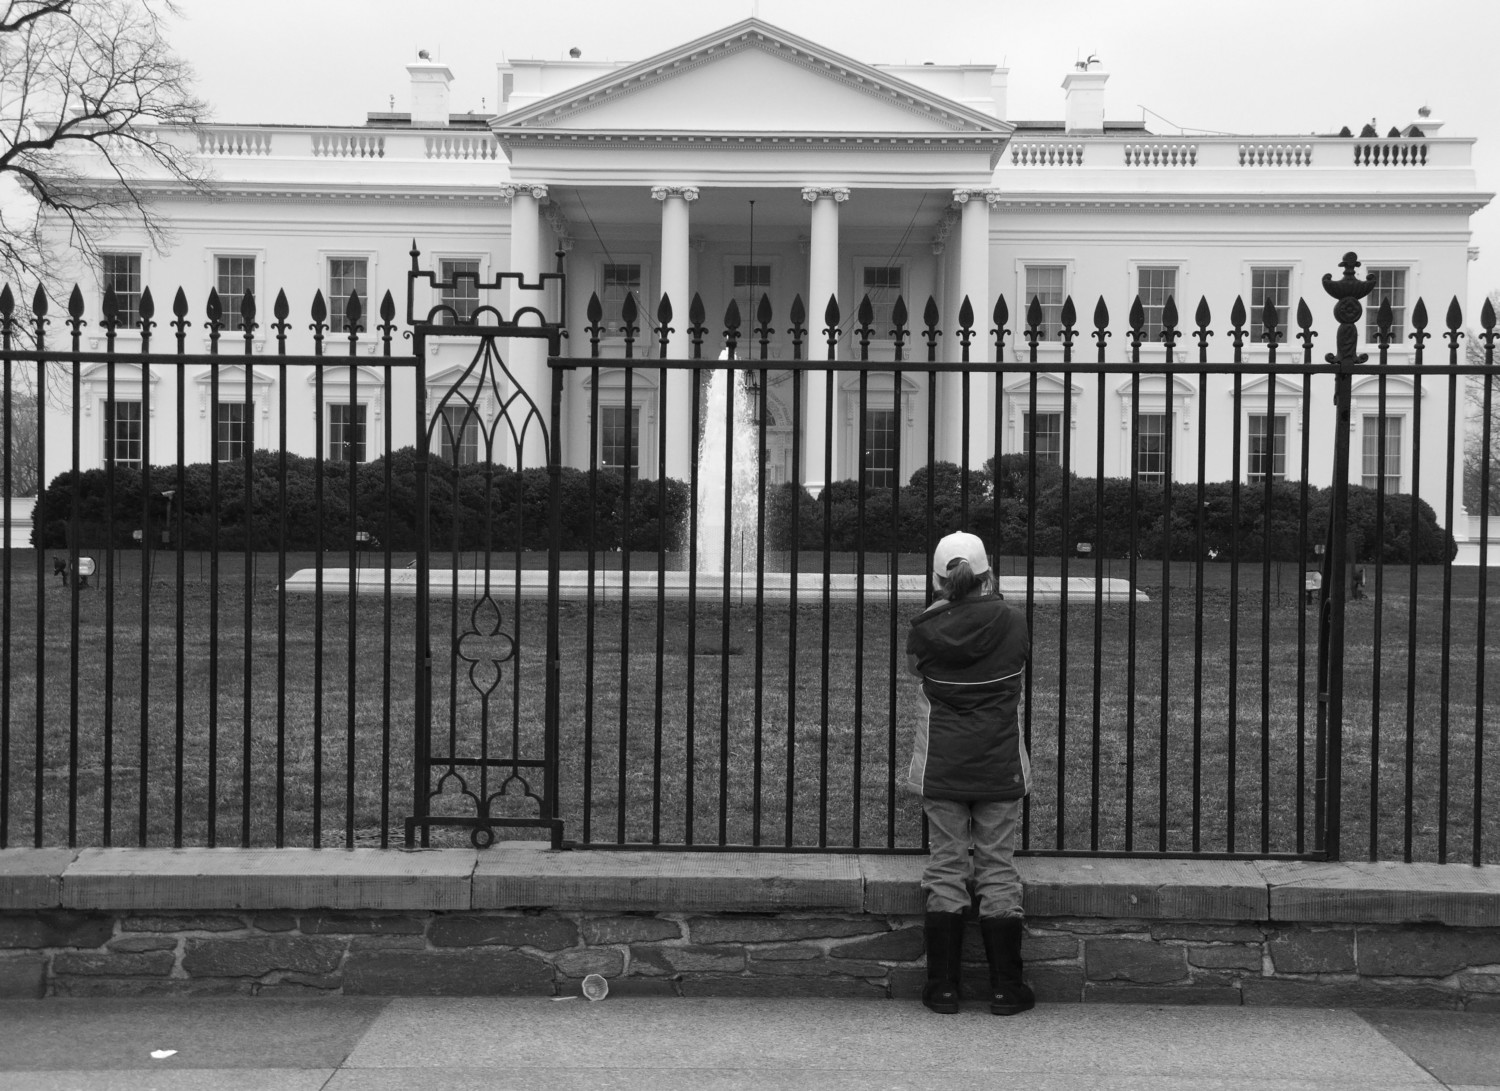 At the White House, March 2009